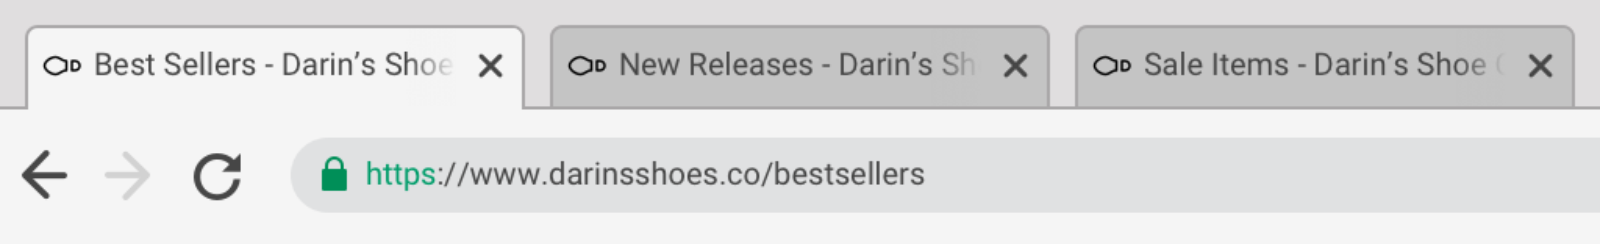 """Tabbed browser interface display three tabs that are labelled """"Best Sellers - Darin's Shoe Company"""", """"New Releases - Darin's Shoe Company"""", and """"Sale Items - Darin's Shoe Company"""""""